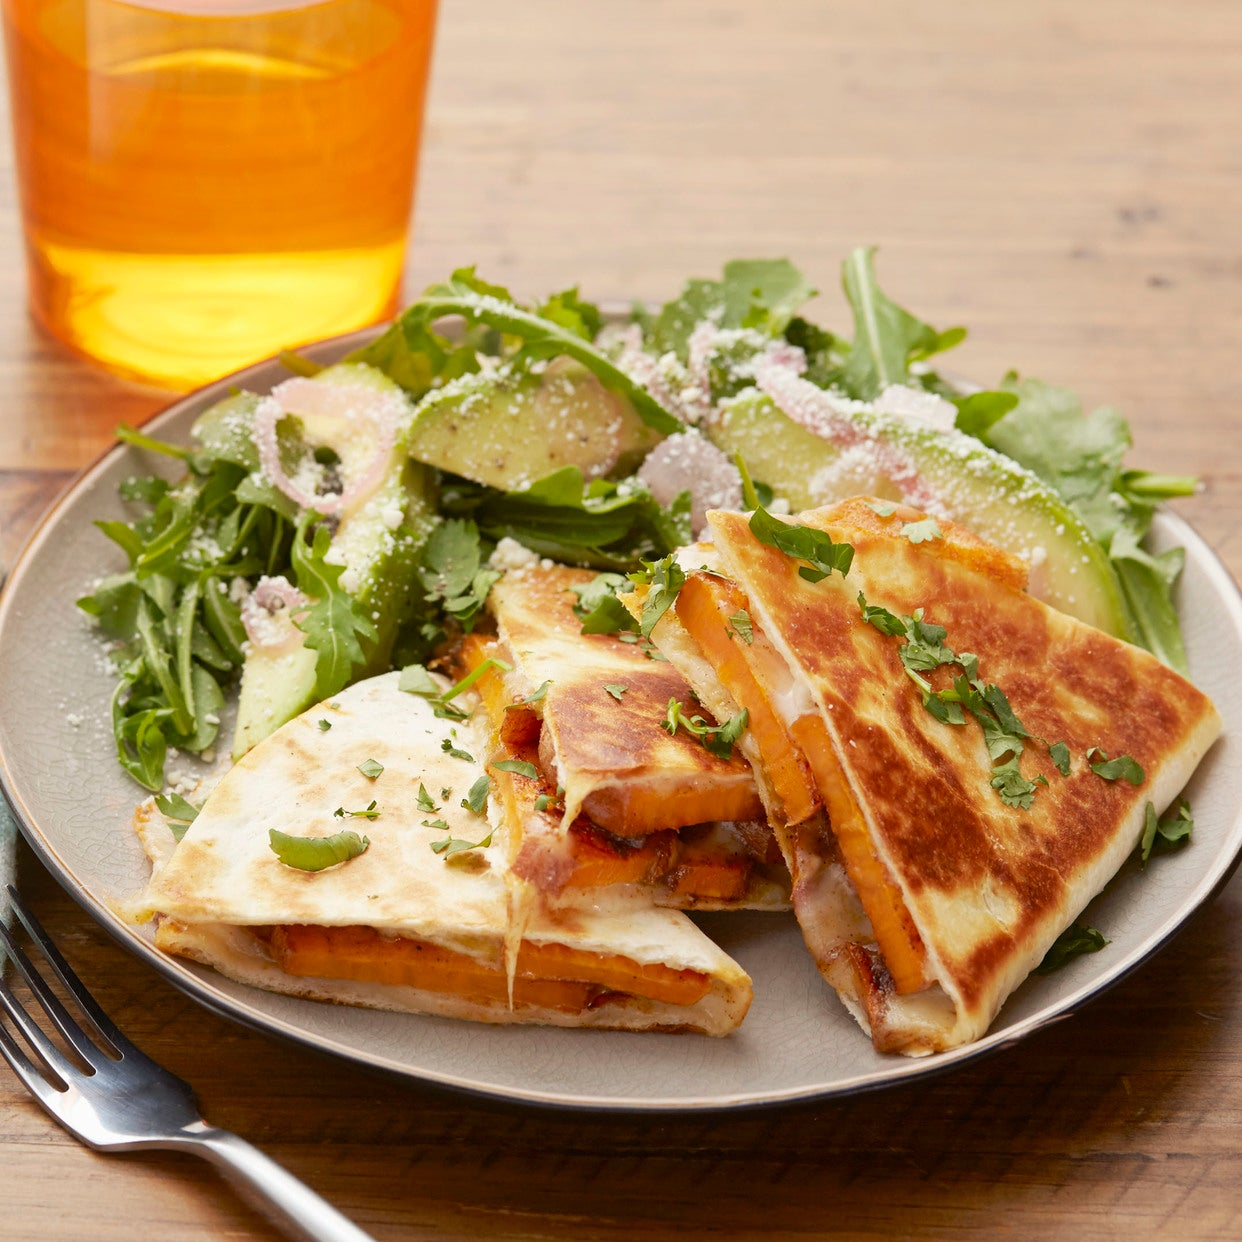 Sweet Potato & Green Chile Quesadillas with Arugula & Avocado Salad